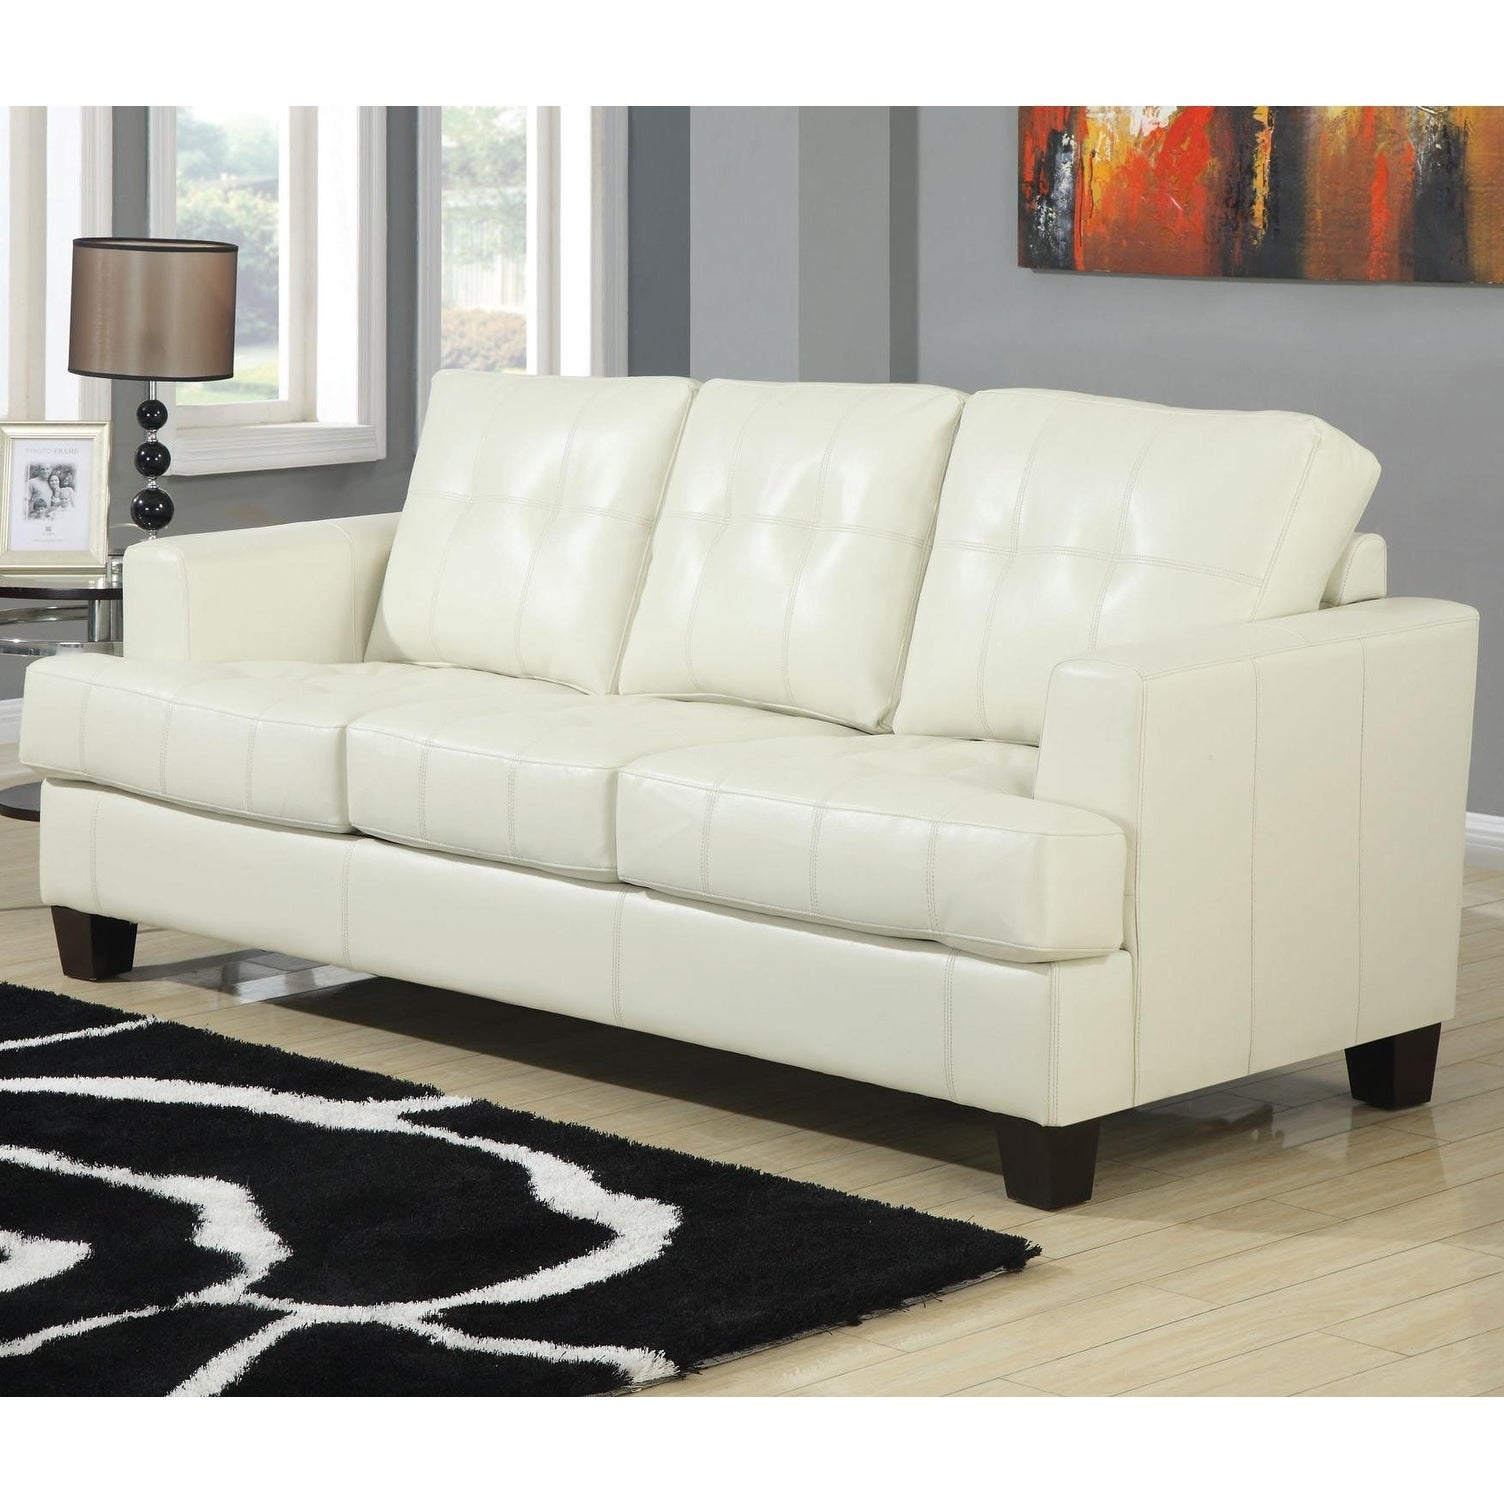 Cream Sofas Couches Online At Our Best Living Room Furniture Deals